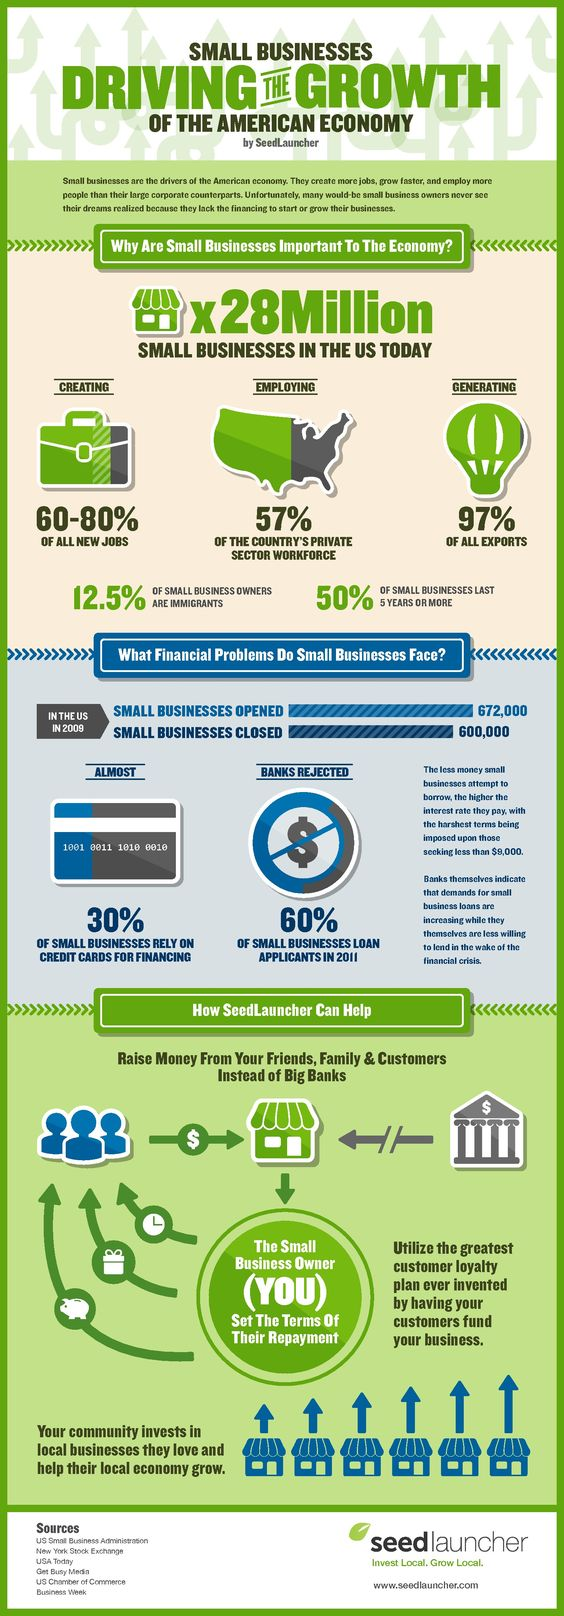 Small Businesses Fuel the American Economy Infographic